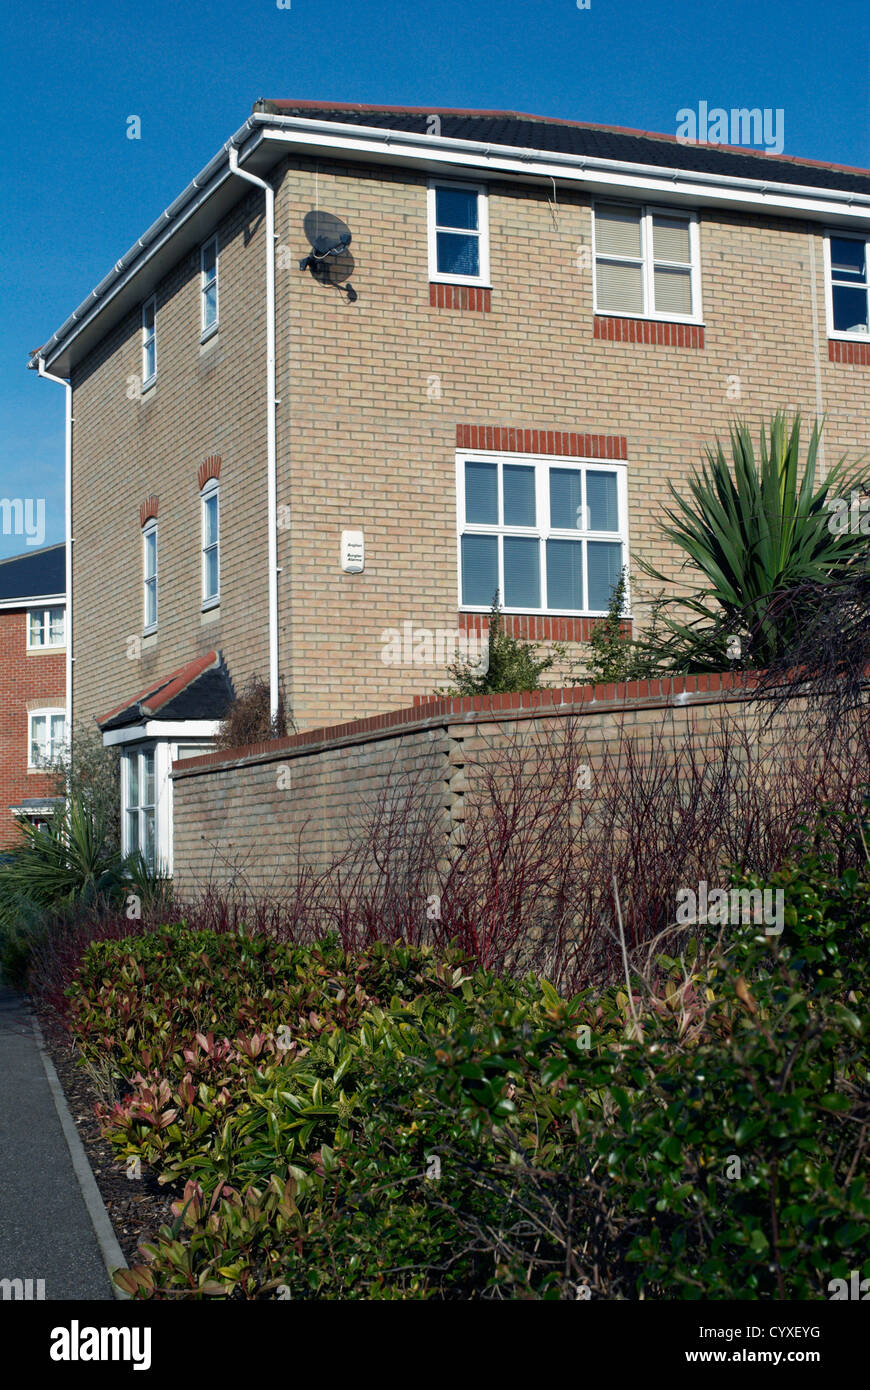 Landscaping around a residential house Stock Photo, Royalty Free ...